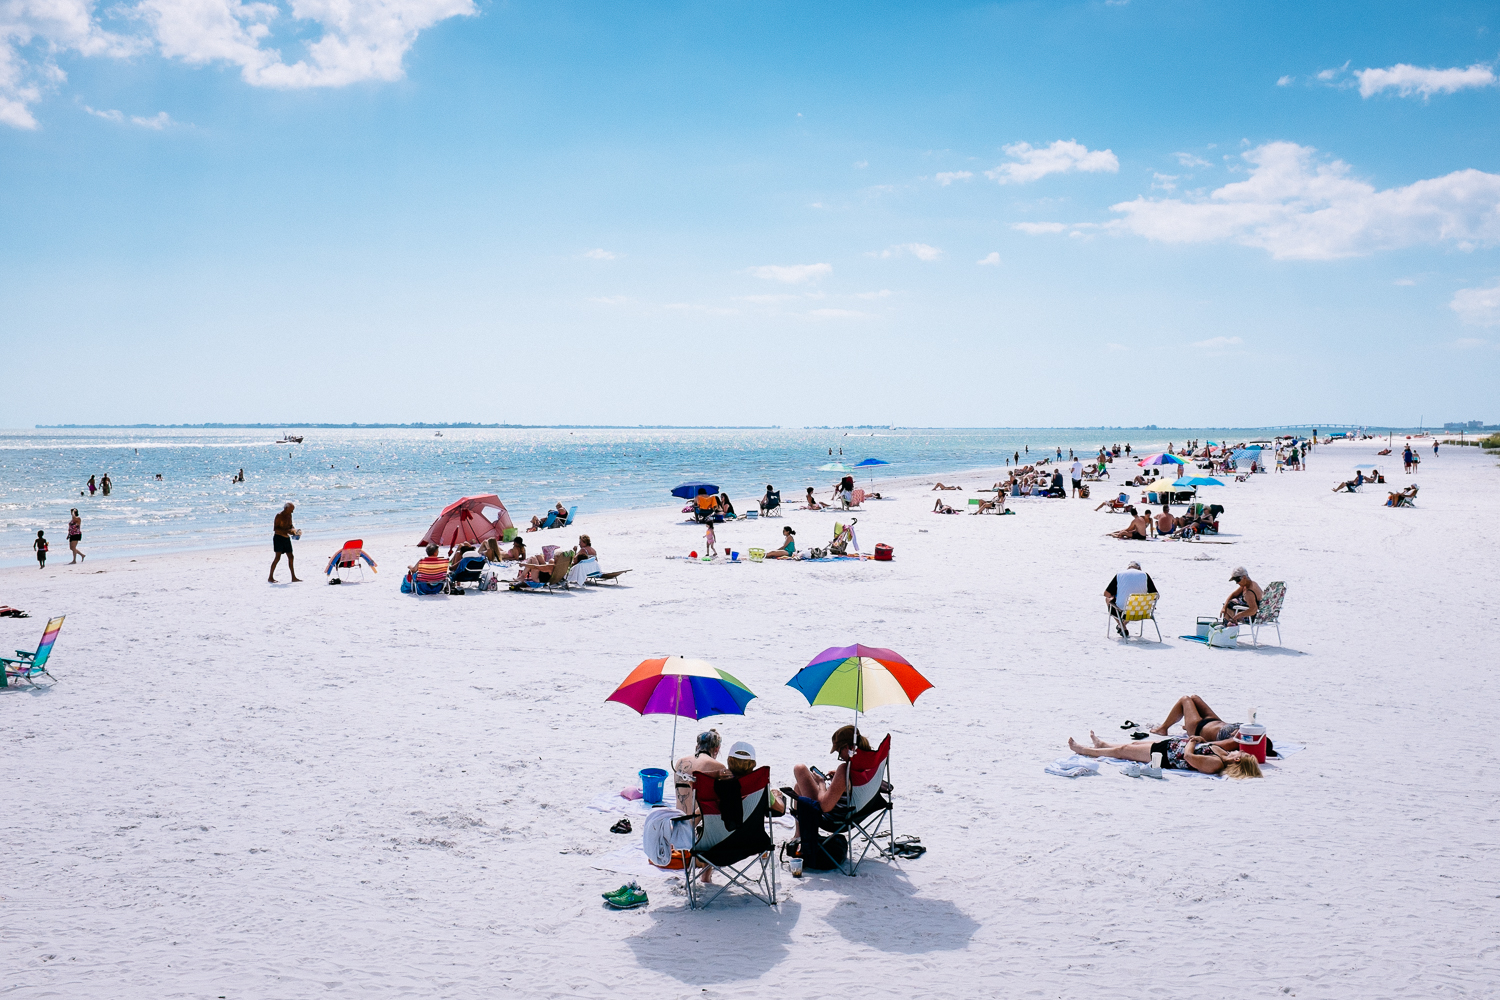 A random weekday at Fort Myers Beach.